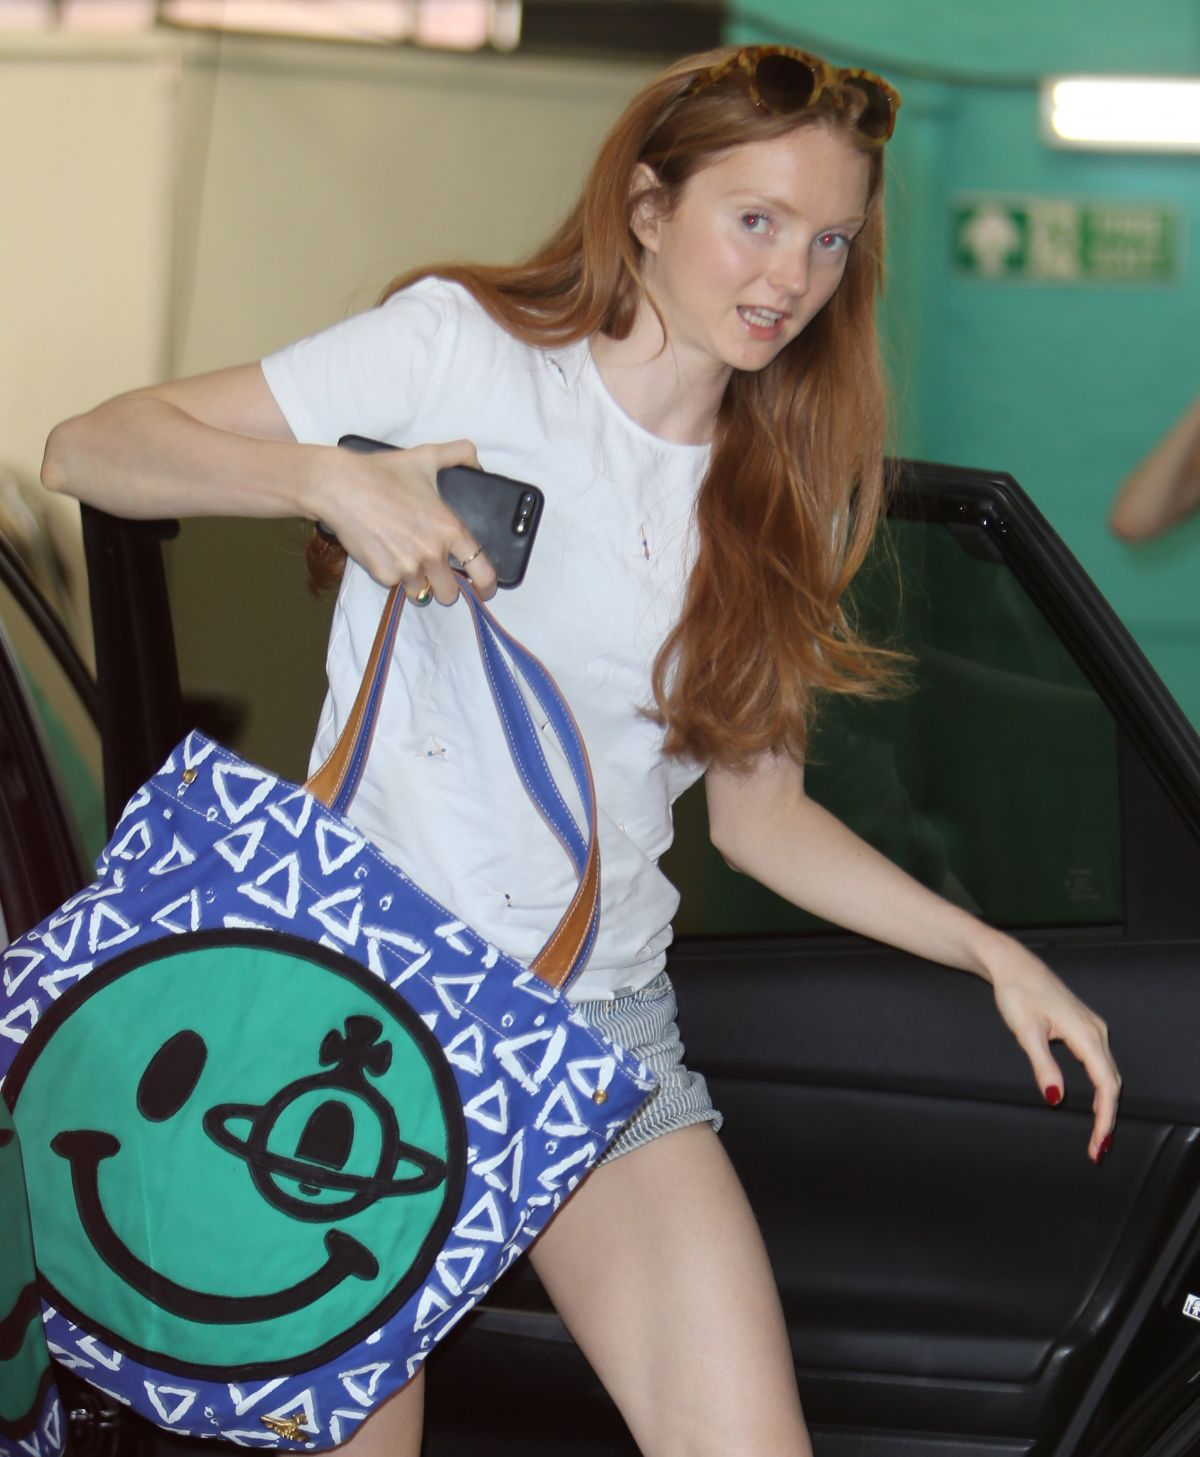 LILY COLE at ITV Studios in London 06/14/2017